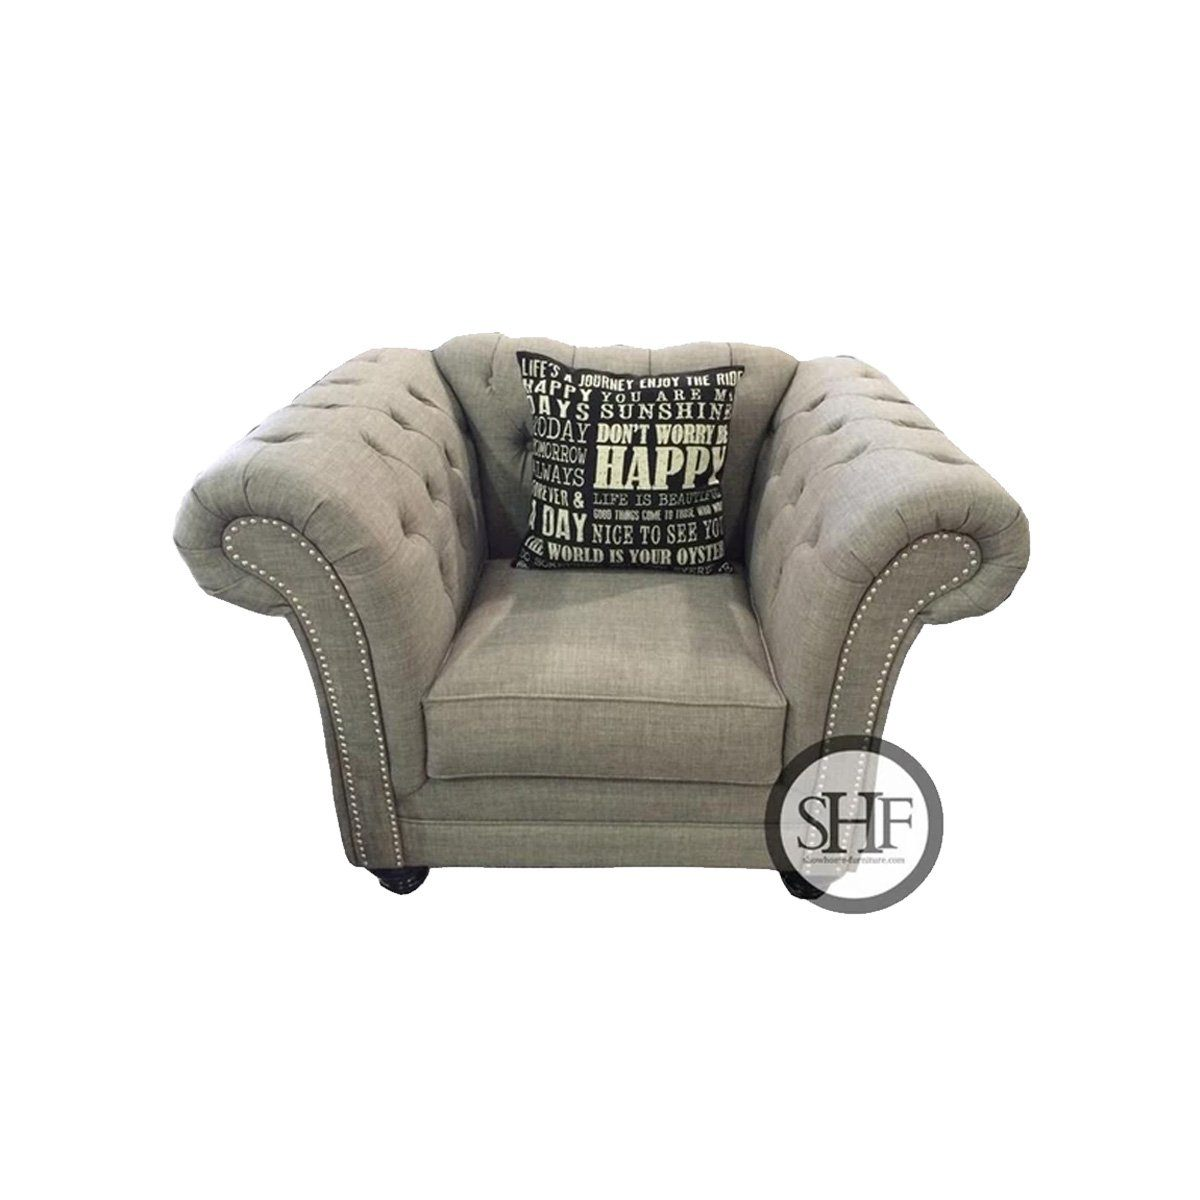 Custom Flair Chair, Made in Canada 🇨🇦 | Calgary's Furniture Store